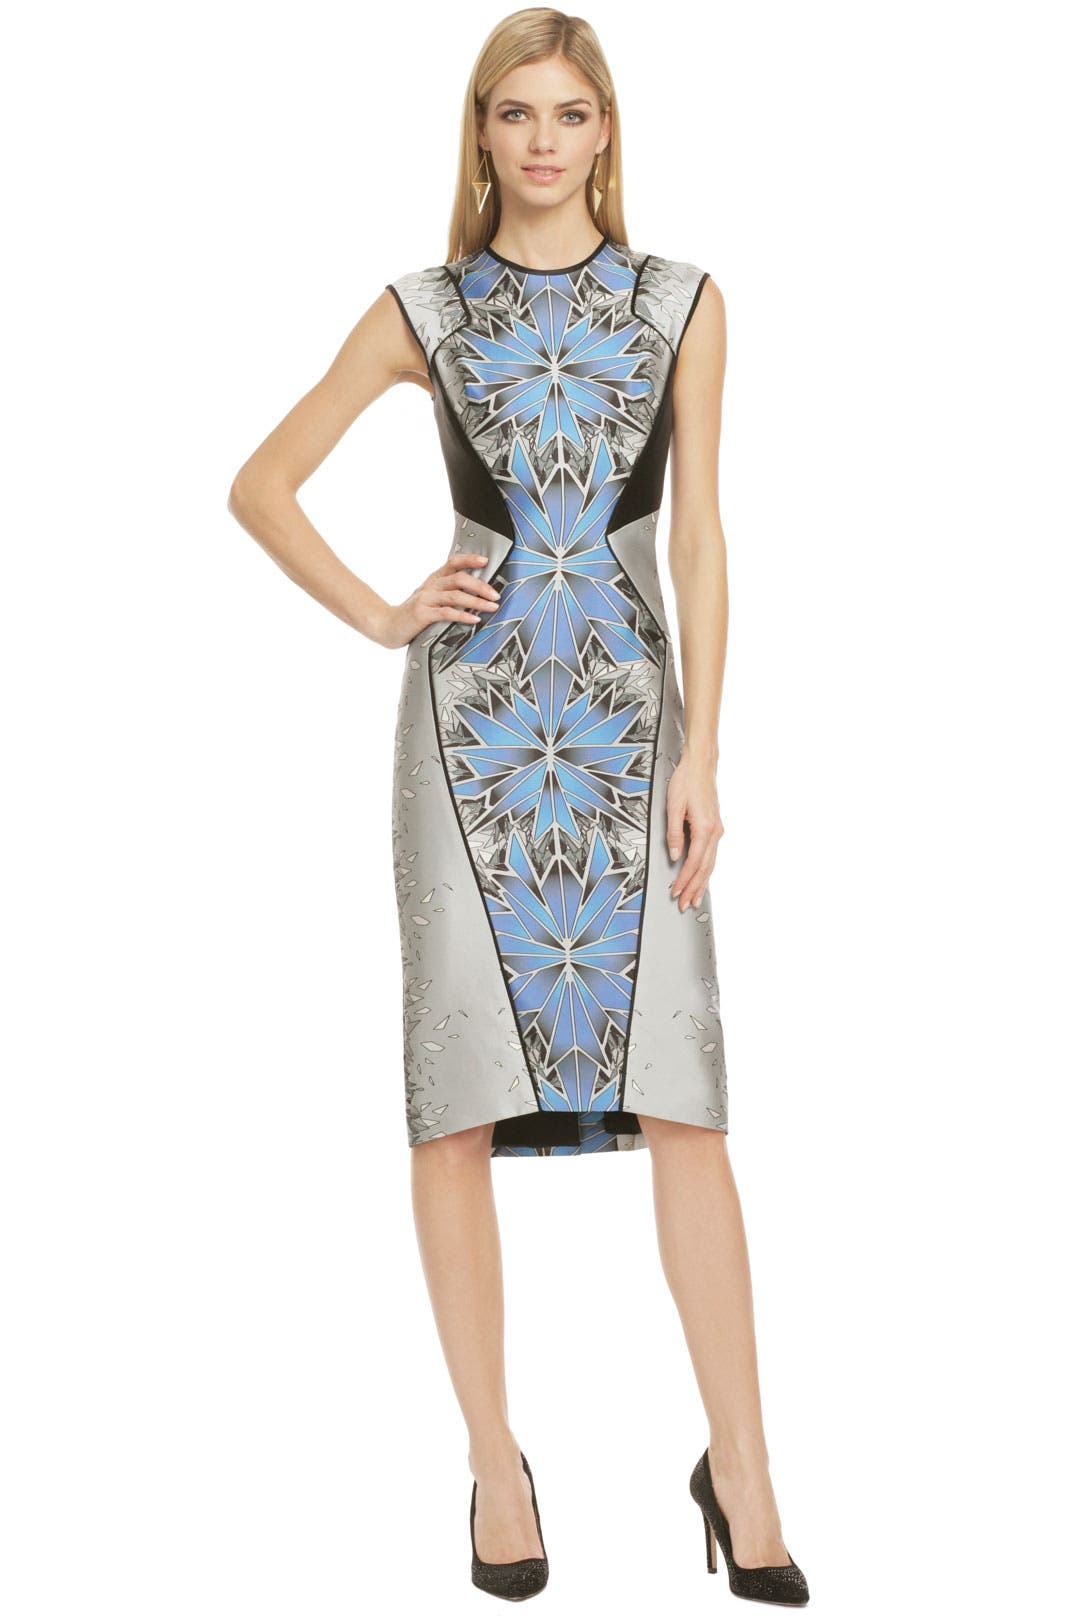 Avalanche Dress by Bibhu Mohapatra